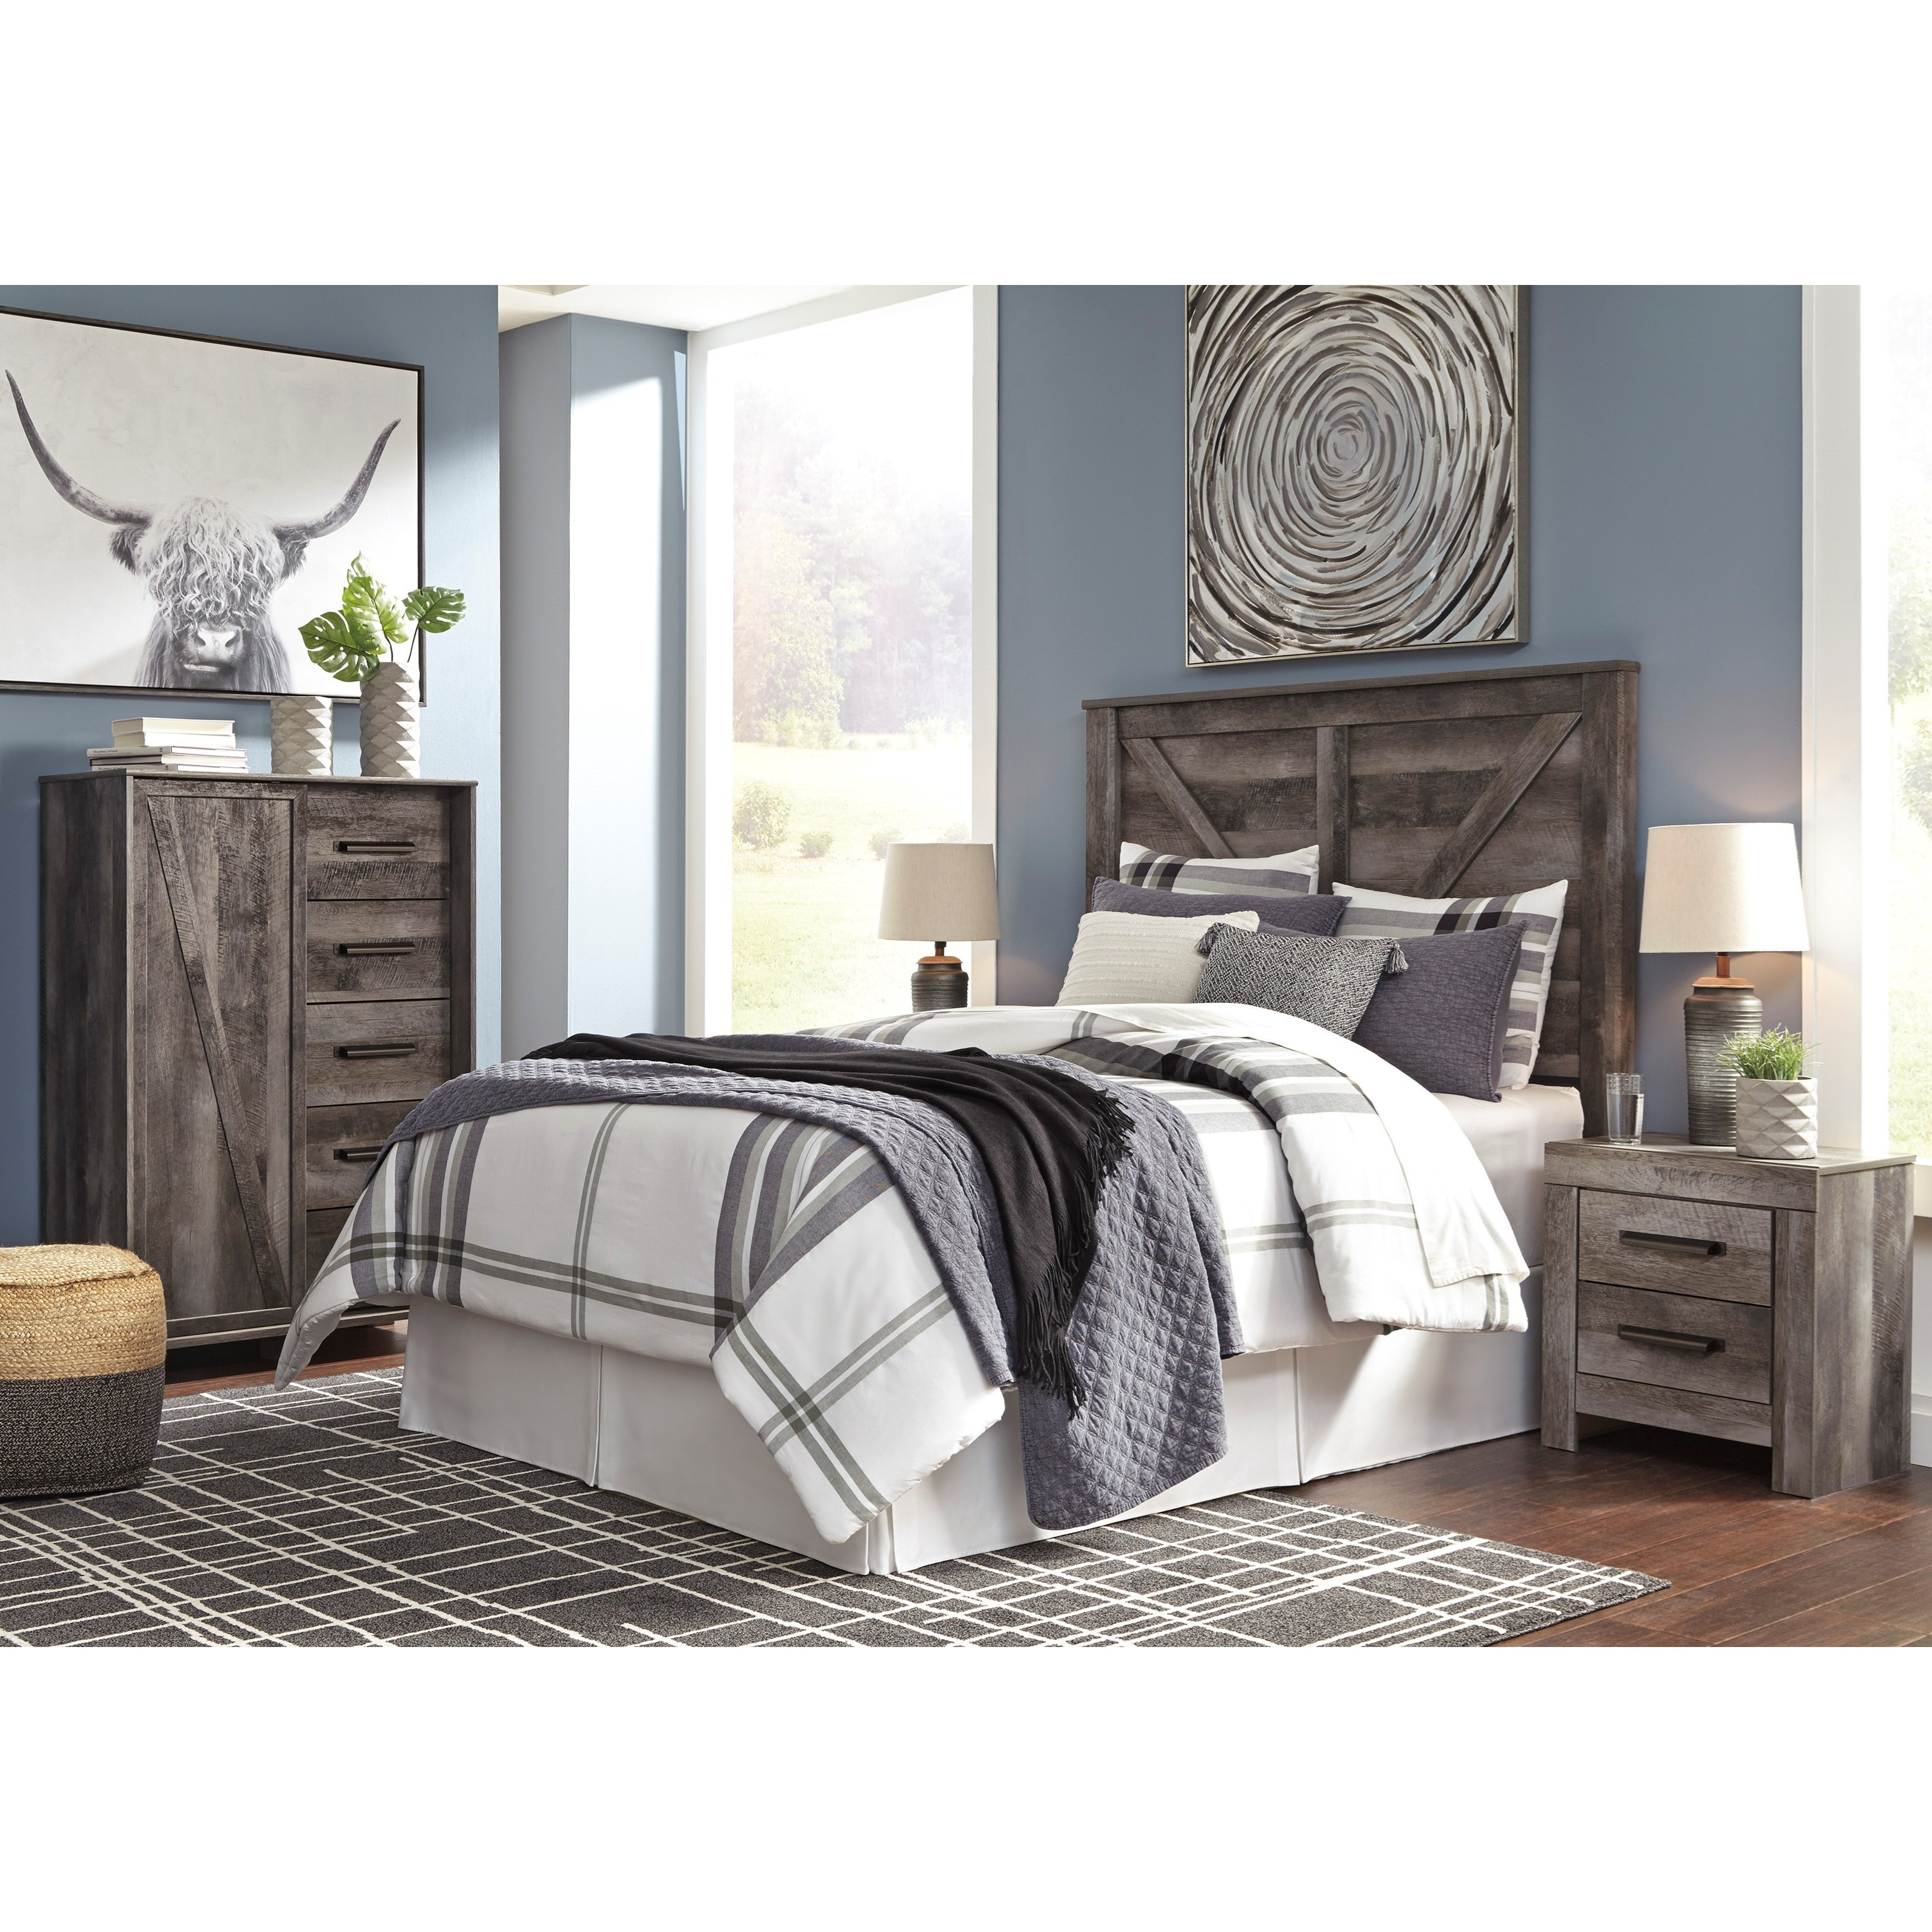 Signature Design By Ashley Wynnlow Queen Bedroom Group